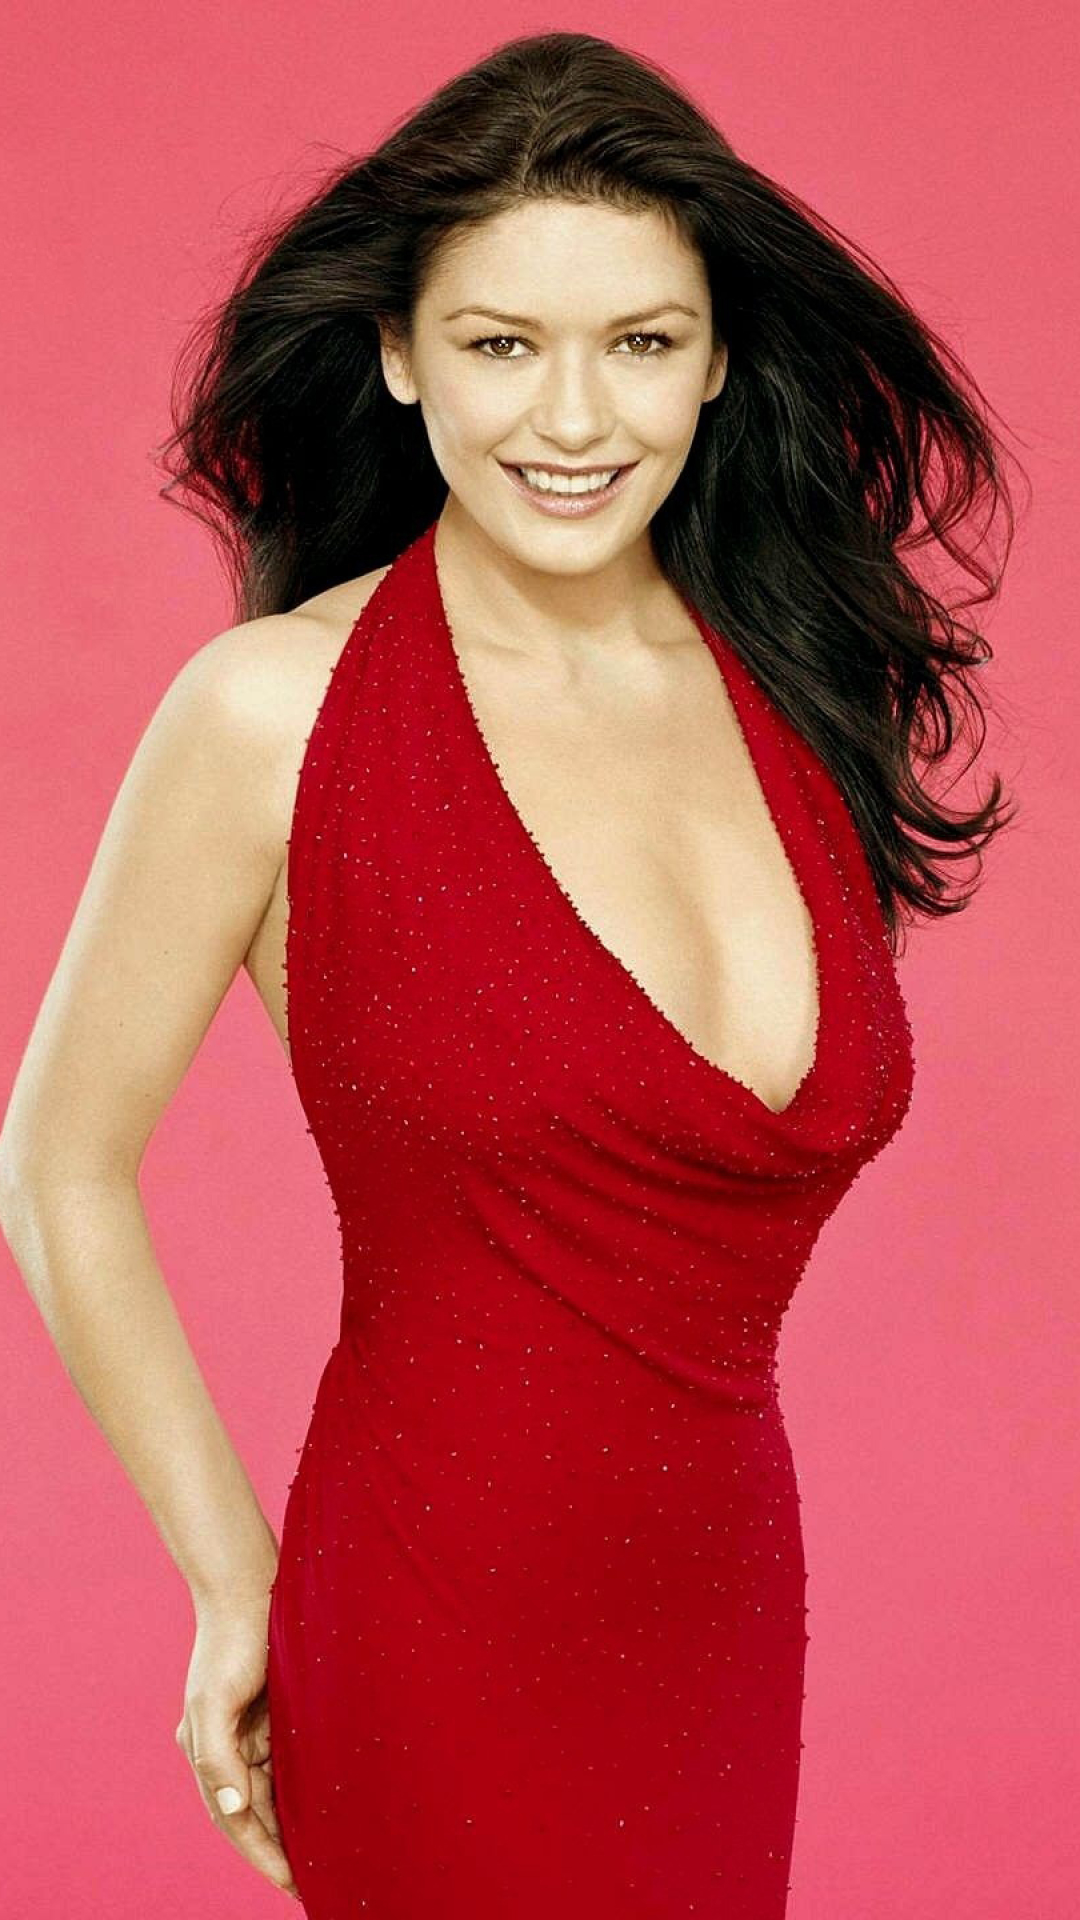 Catherine Zeta Jones Hot, Full HD Wallpaper Catherine Zeta Jones